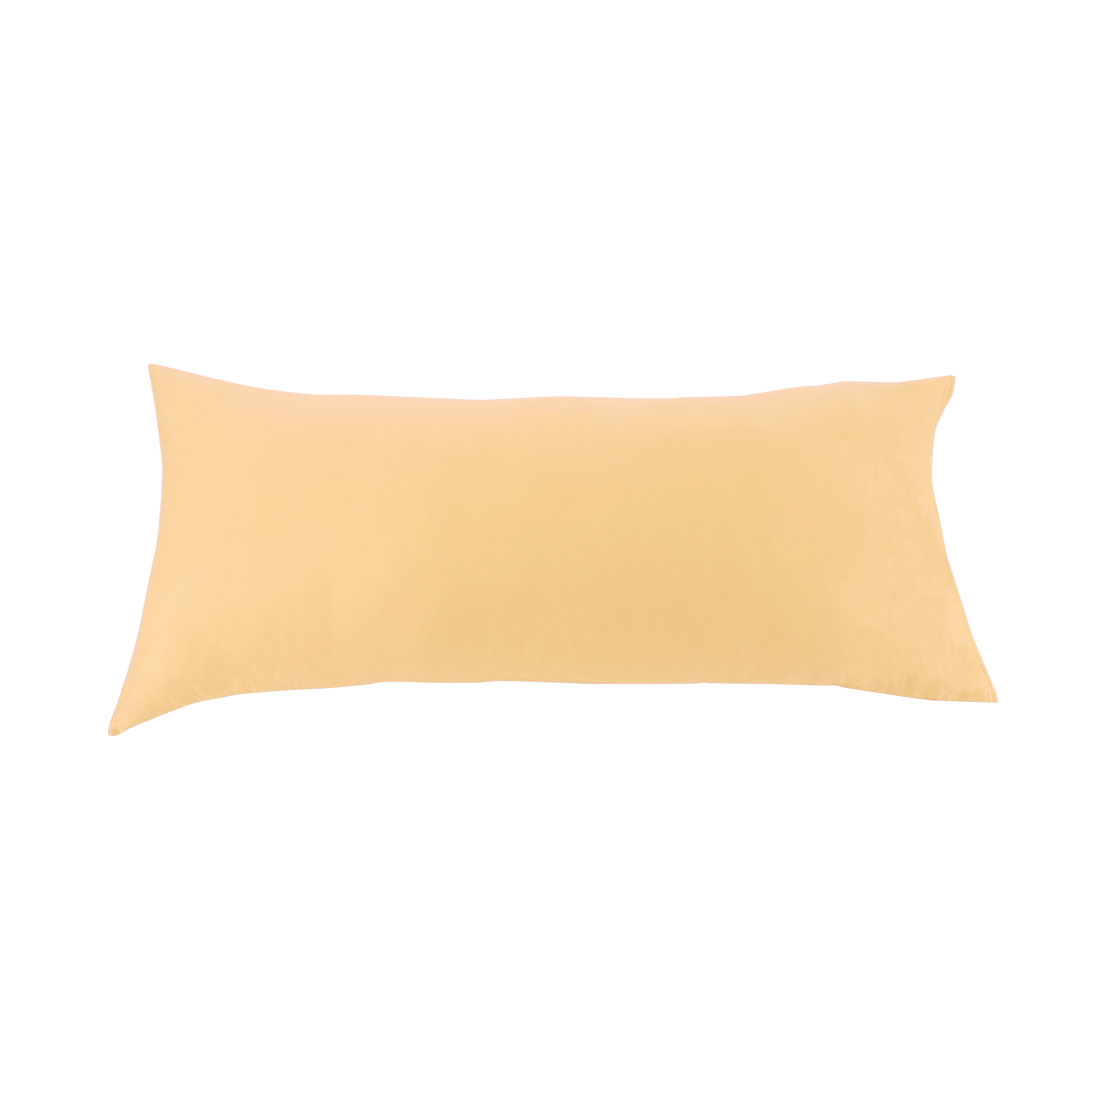 Body Pillowcase Pillow Covers and Cases Protector 20 x 54,Egyptian Cotton by